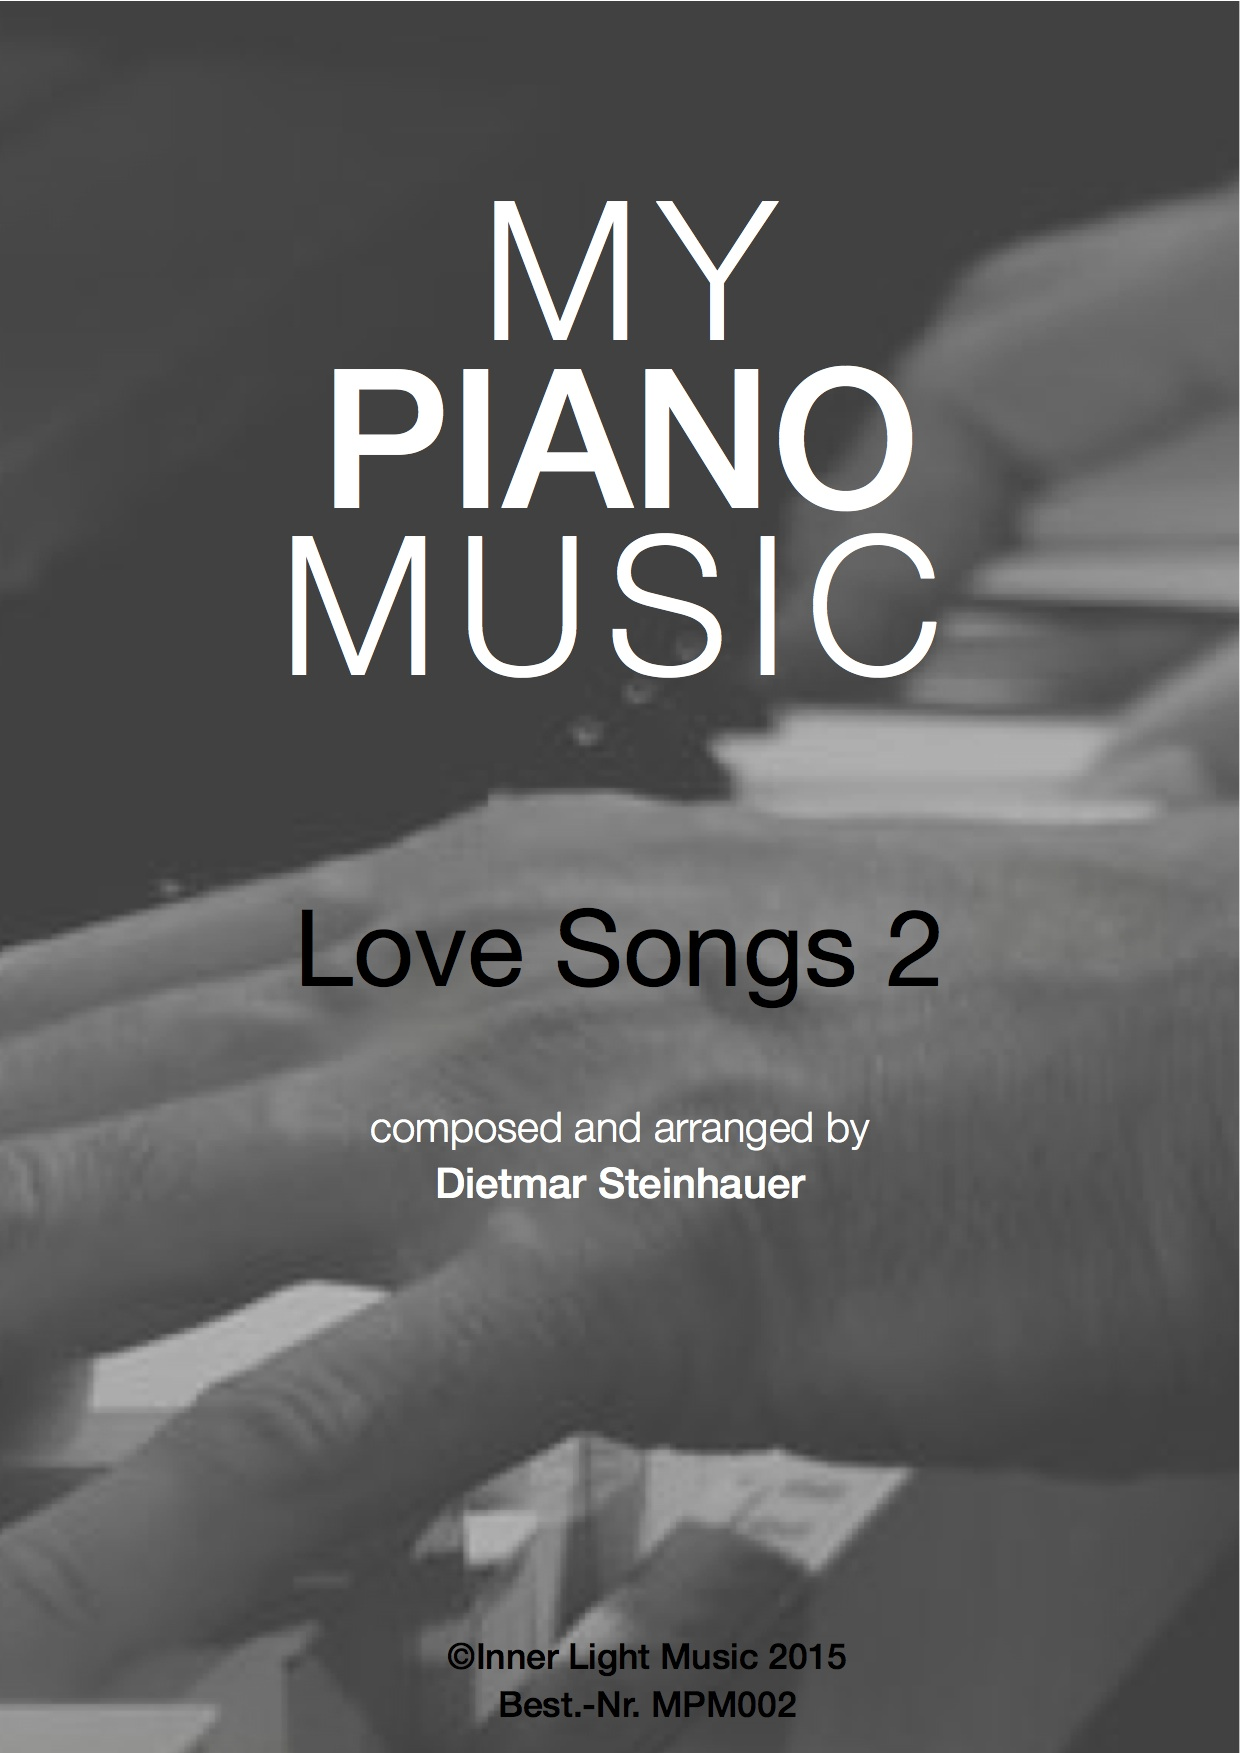 Lovesongs 2 - My Piano Music Edition - tastenland